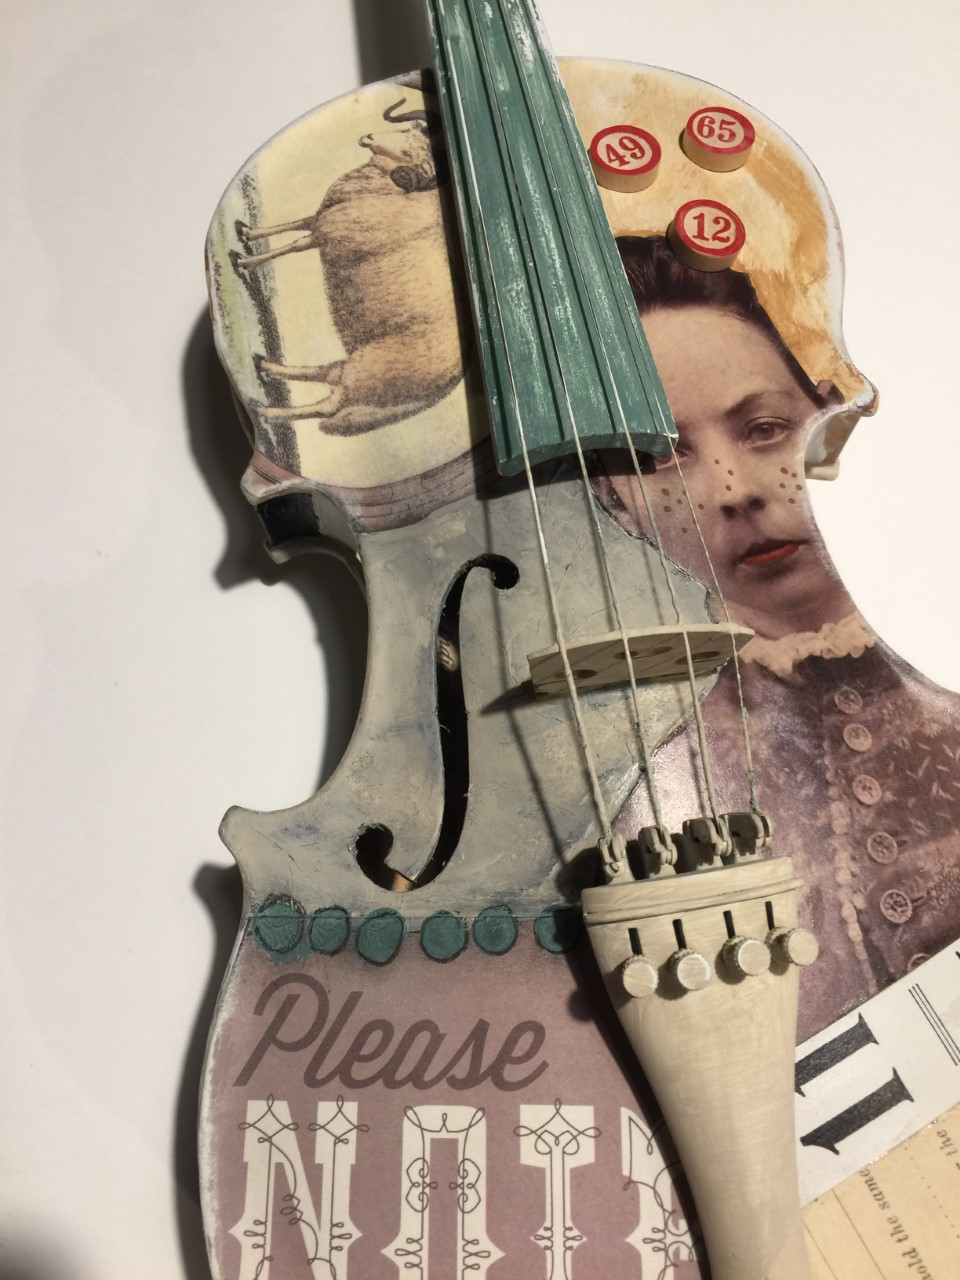 Metropolitan Youth Orchestra donation - As part of the 2017 fundraiser, I enjoyed turning this full size violin into a sculptural piece of collage art!